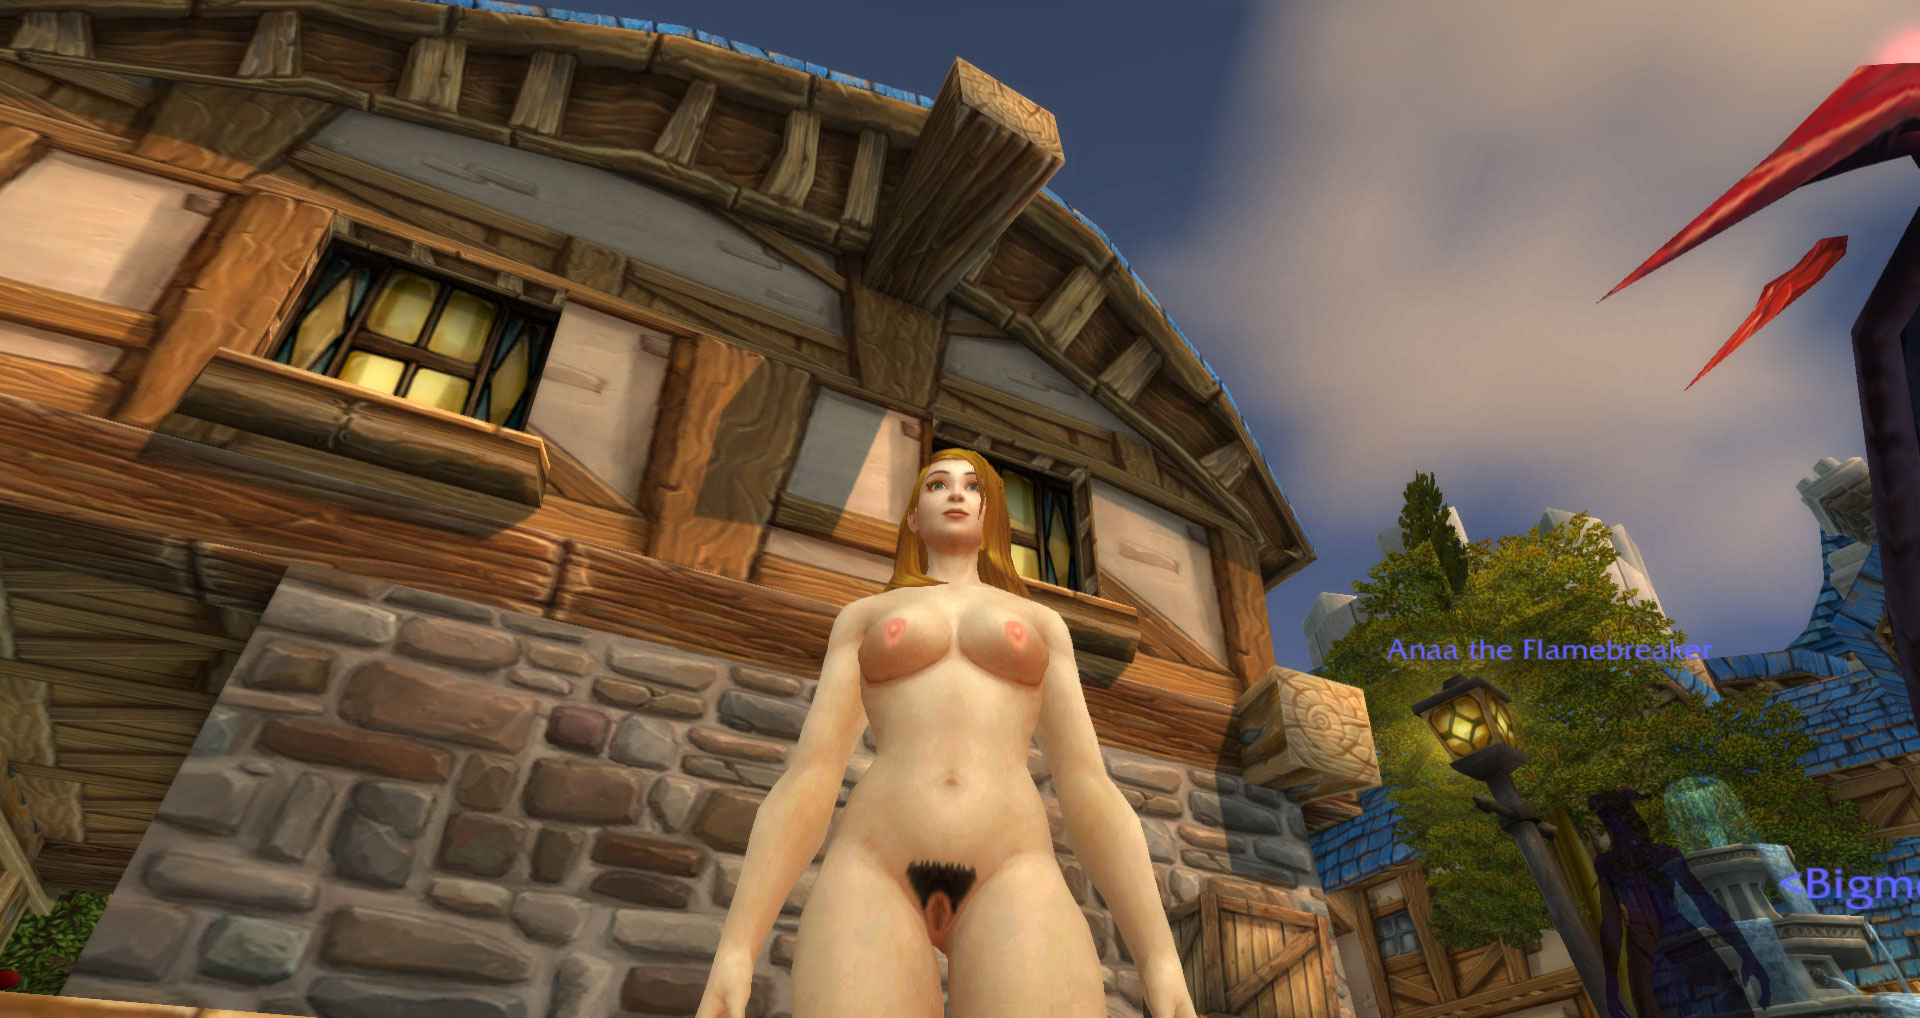 World of warcraft: female human nude mod anime tube